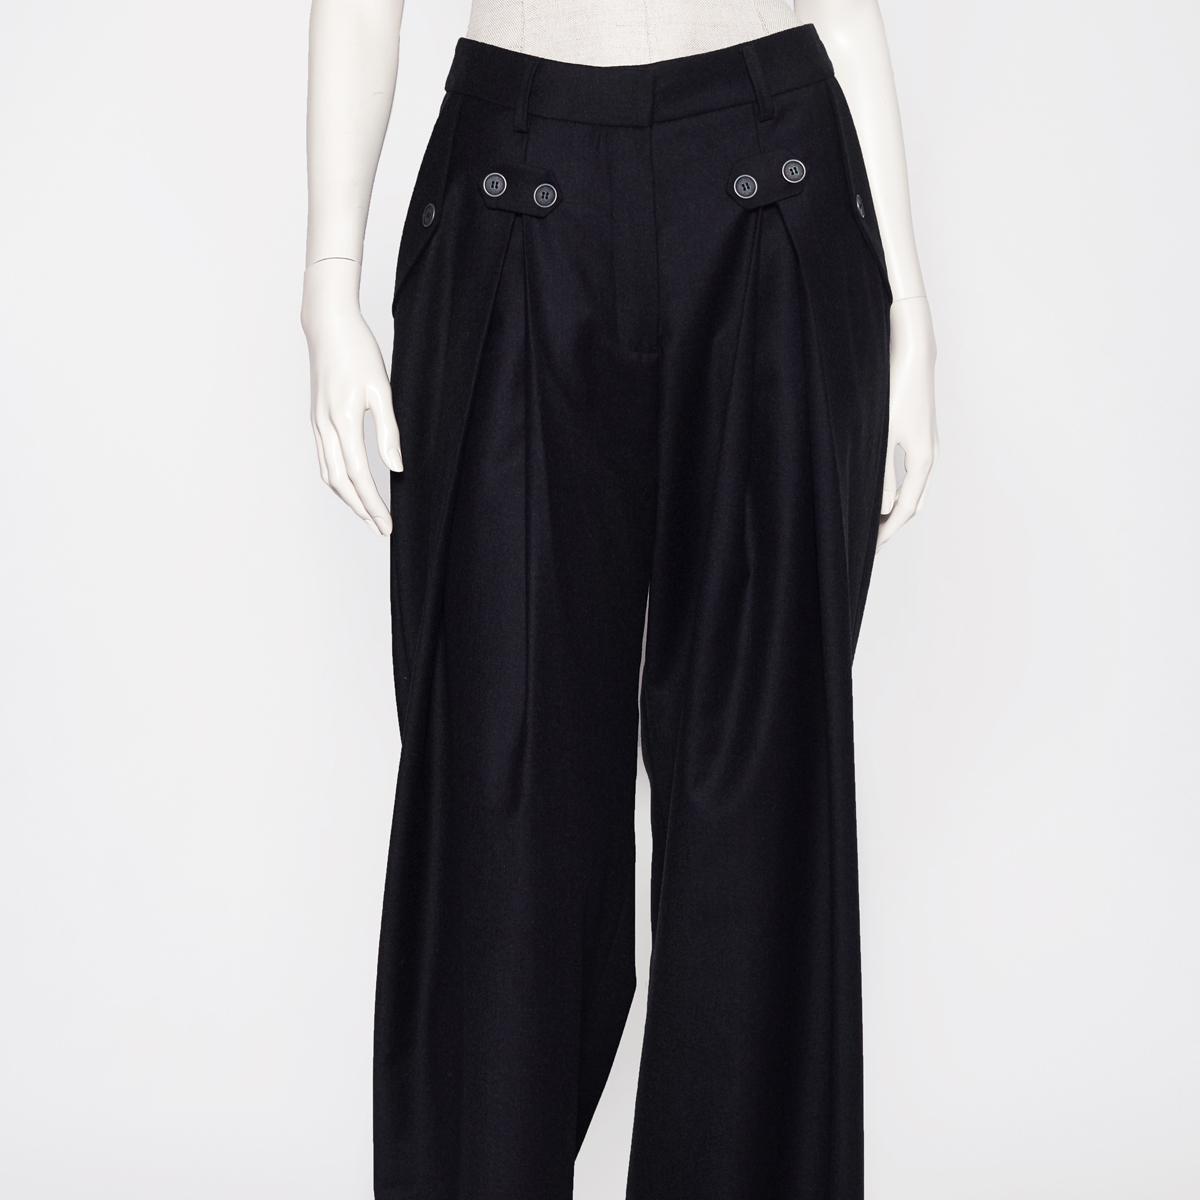 TRANSITION TROUSERS